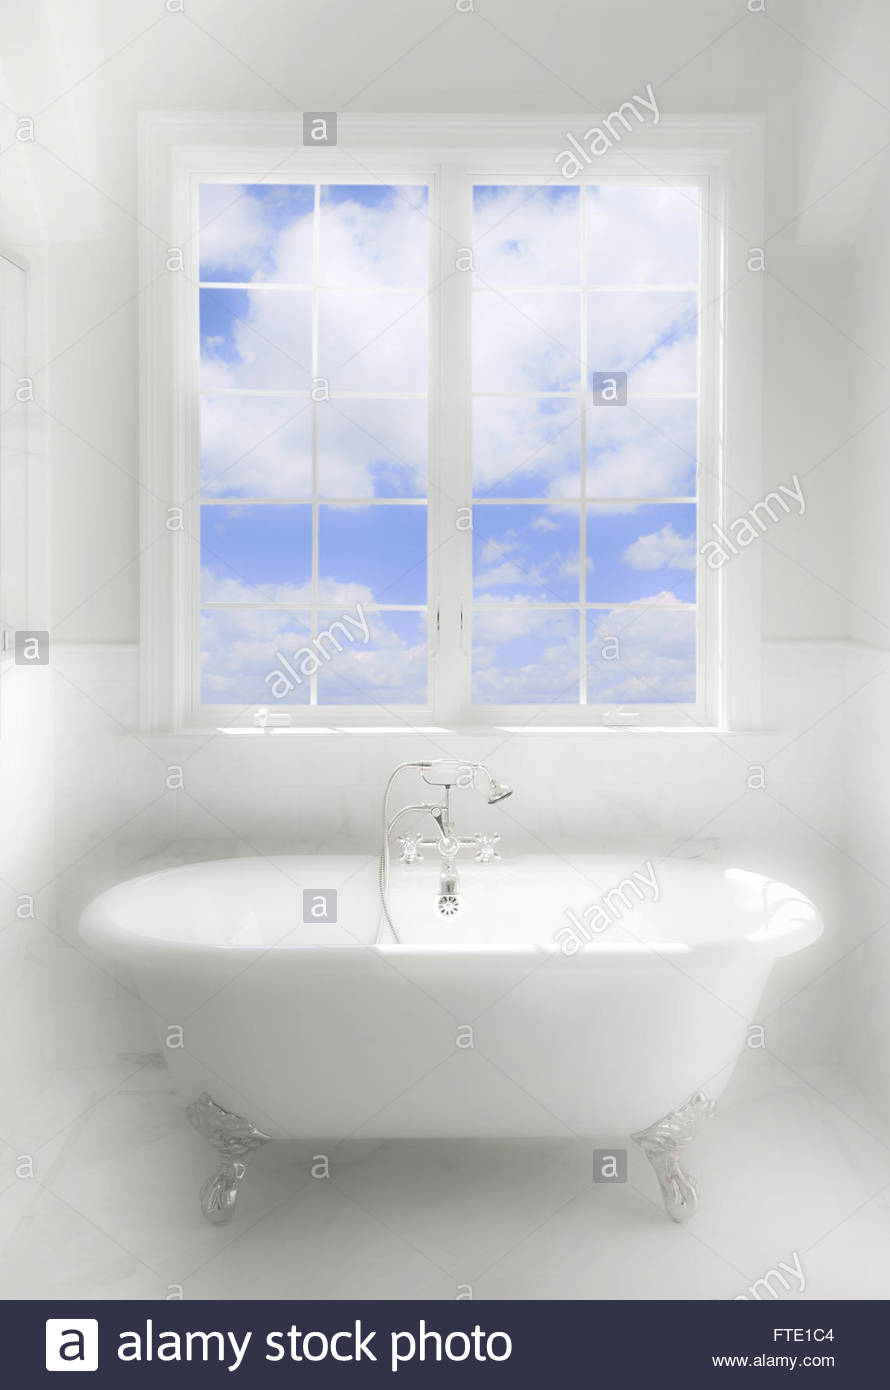 known as a bath tub ring wallpaper 890x1390